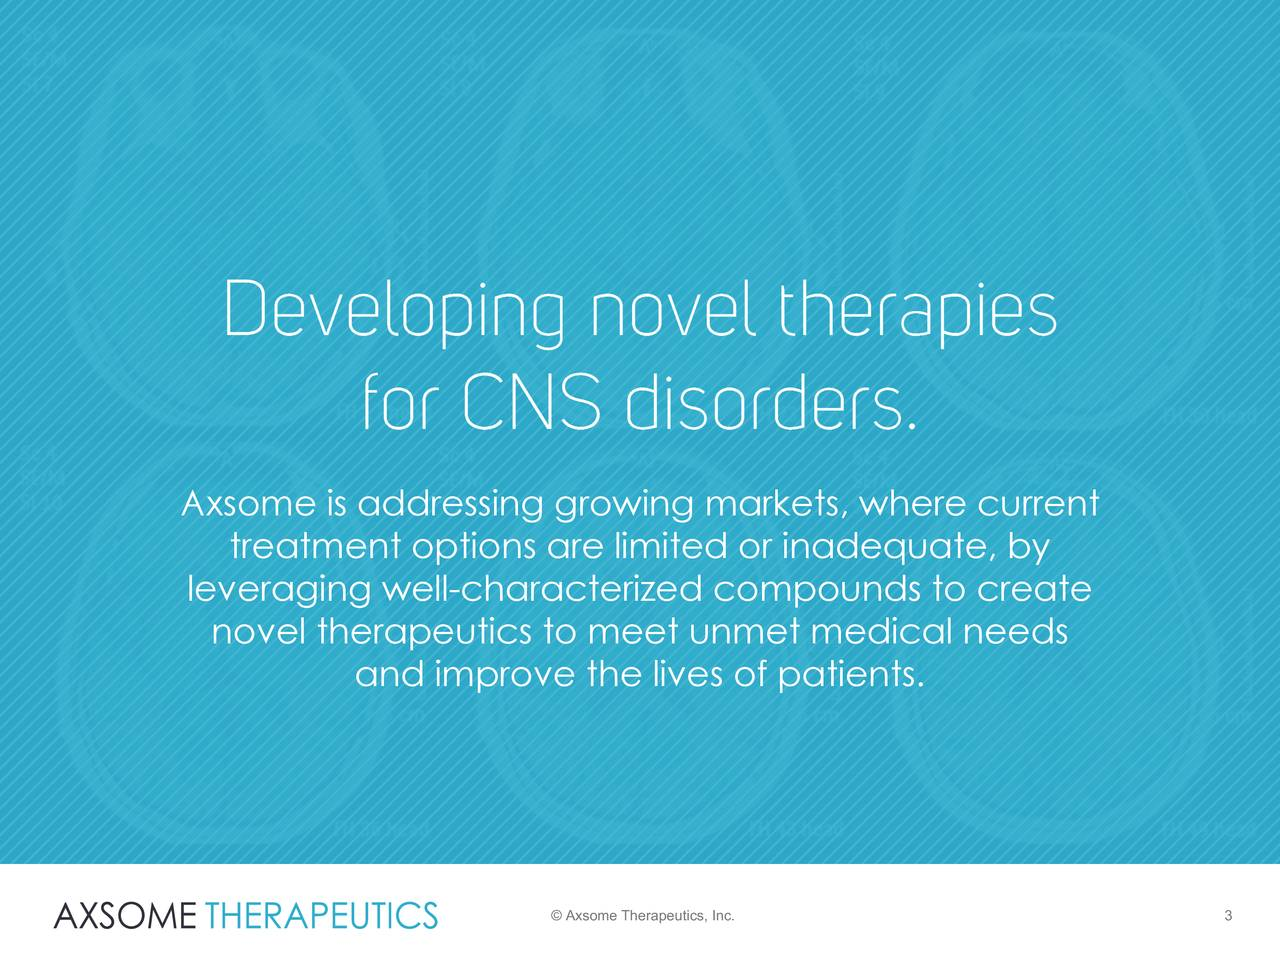 treatment options are limited or inadequate, by leveraging well-characterized compounds to create novel therapeutics to meet unmet medical needs and improve the lives of patients. © Axsome Therapeutics, Inc. 3